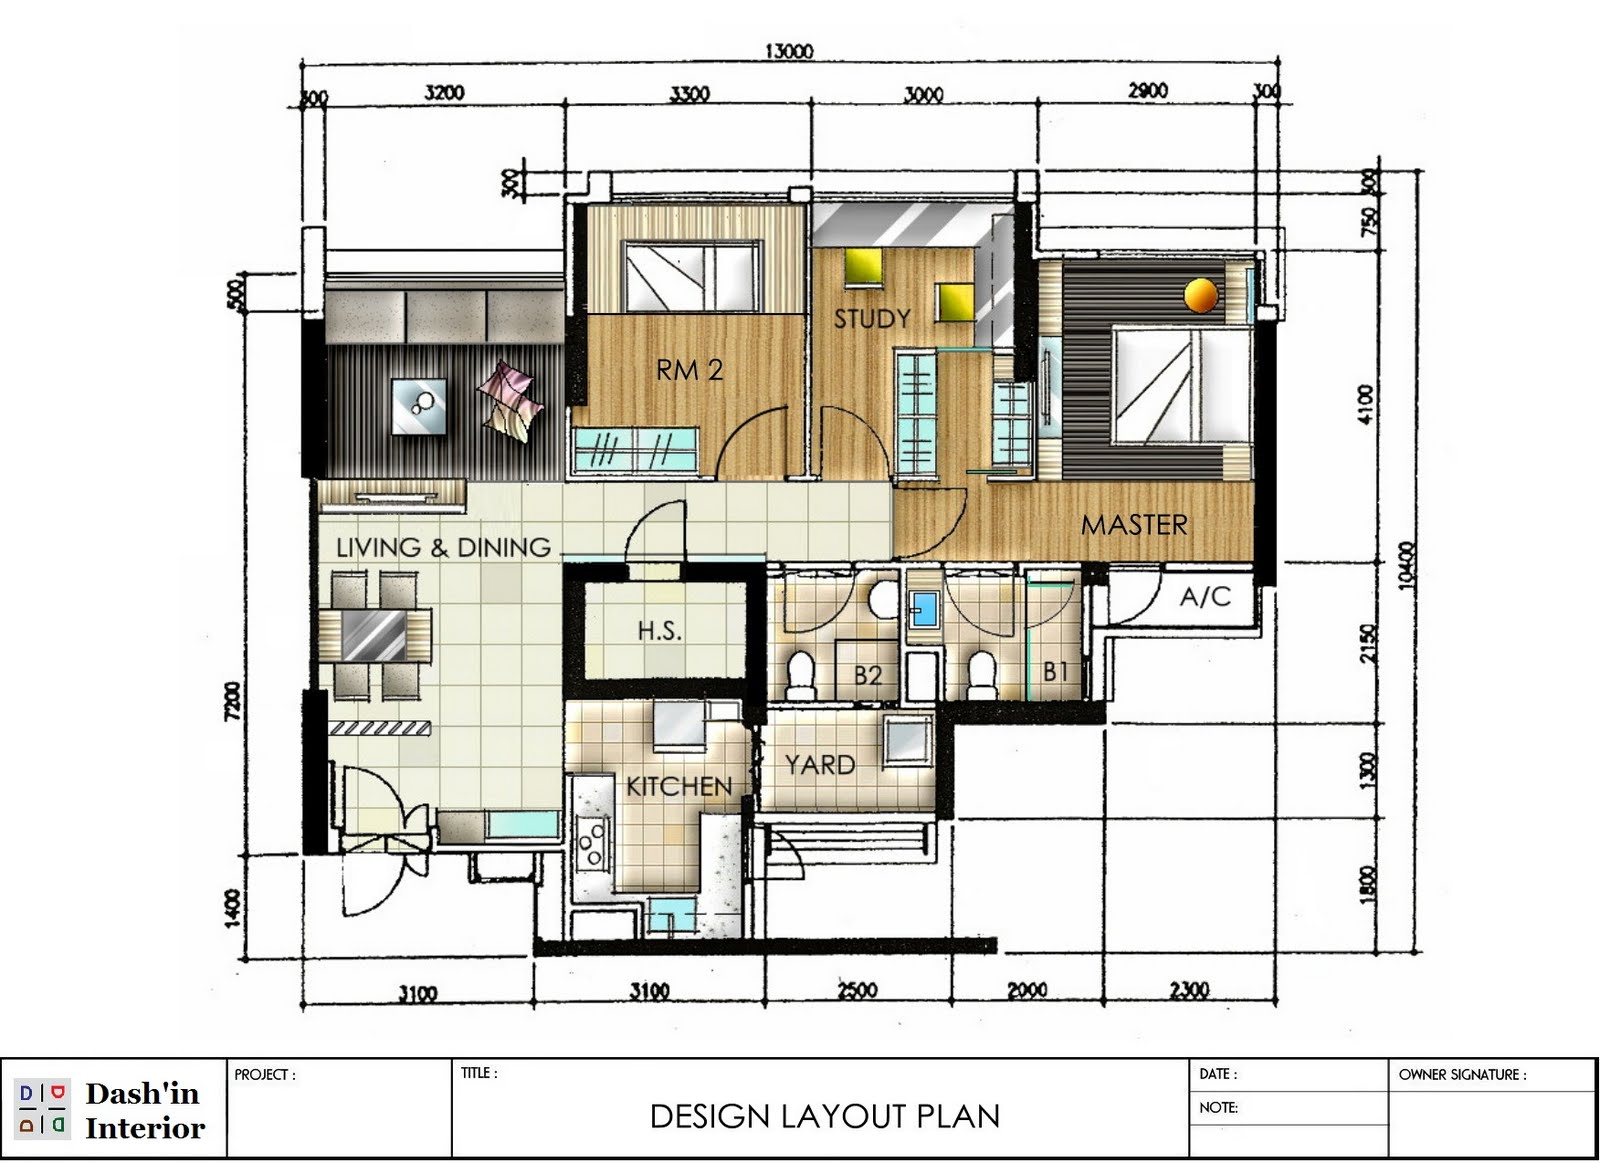 Dash In Interior Hand Drawn Designs Floor Plan Layout